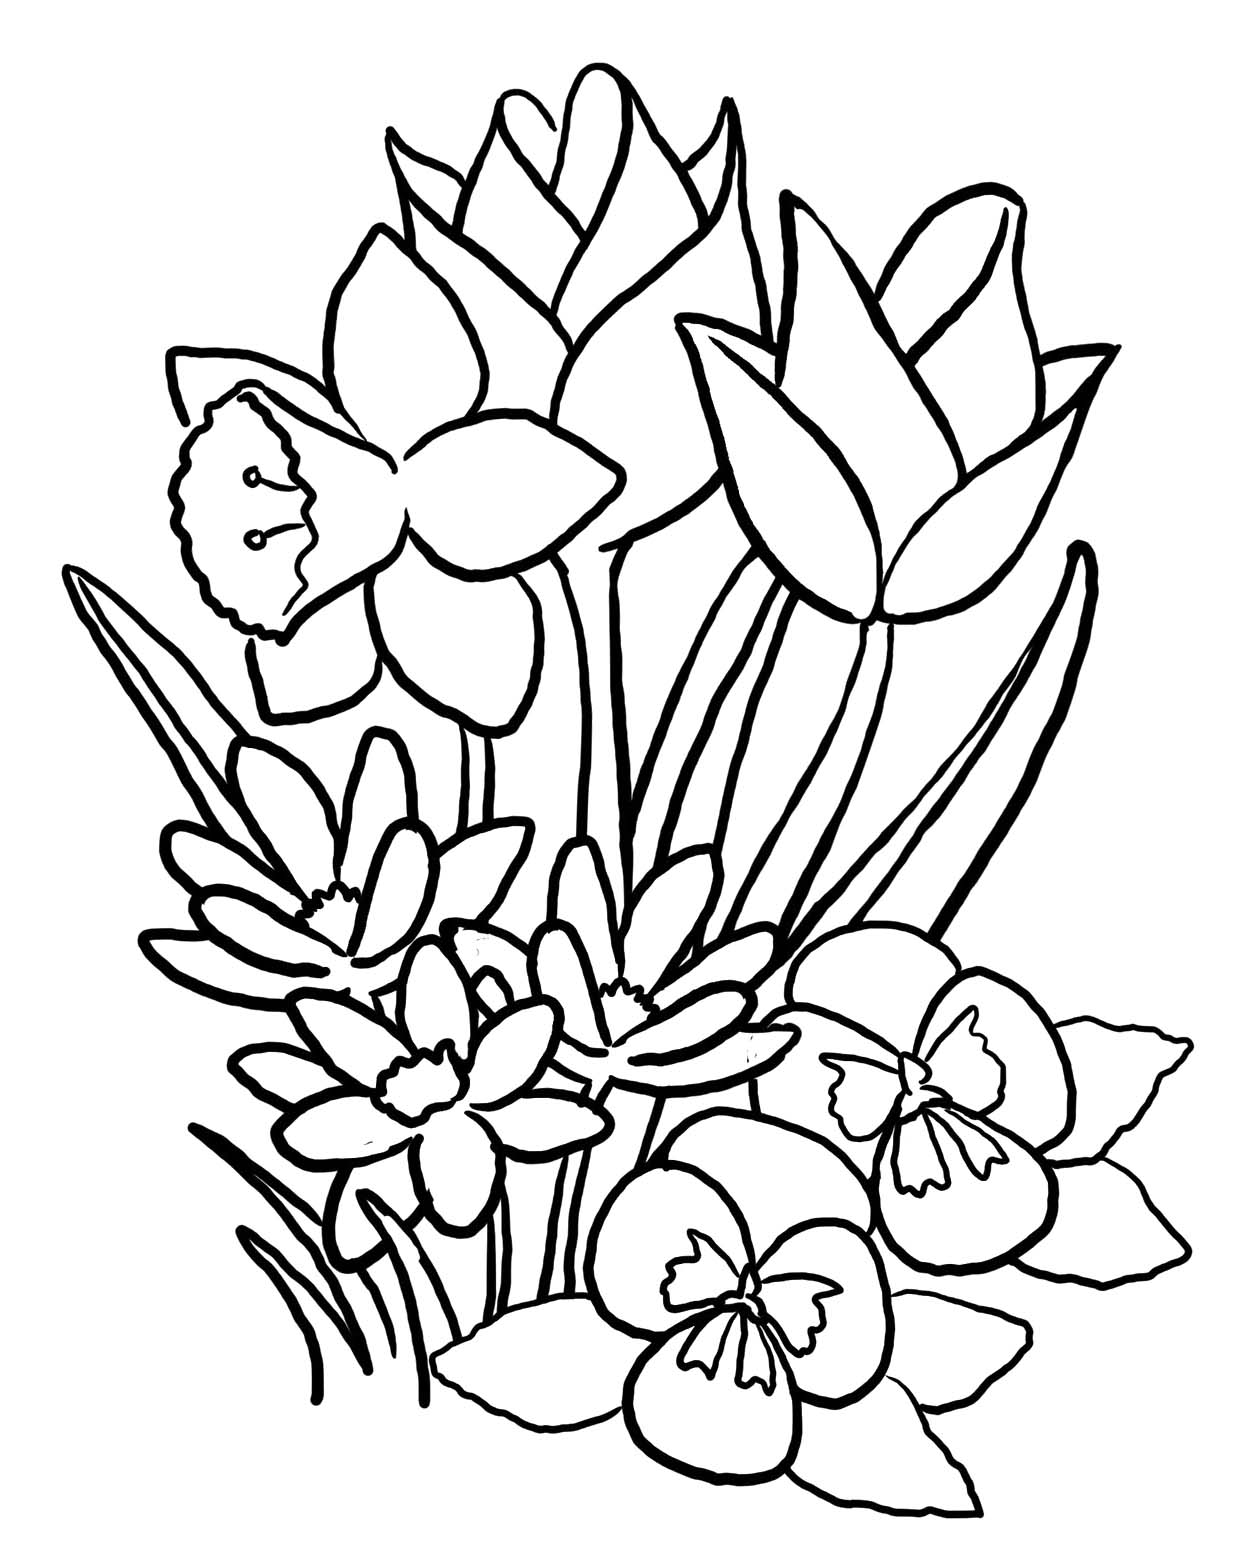 Coloring Pages For Kids Printable : Free printable flower coloring pages for kids best